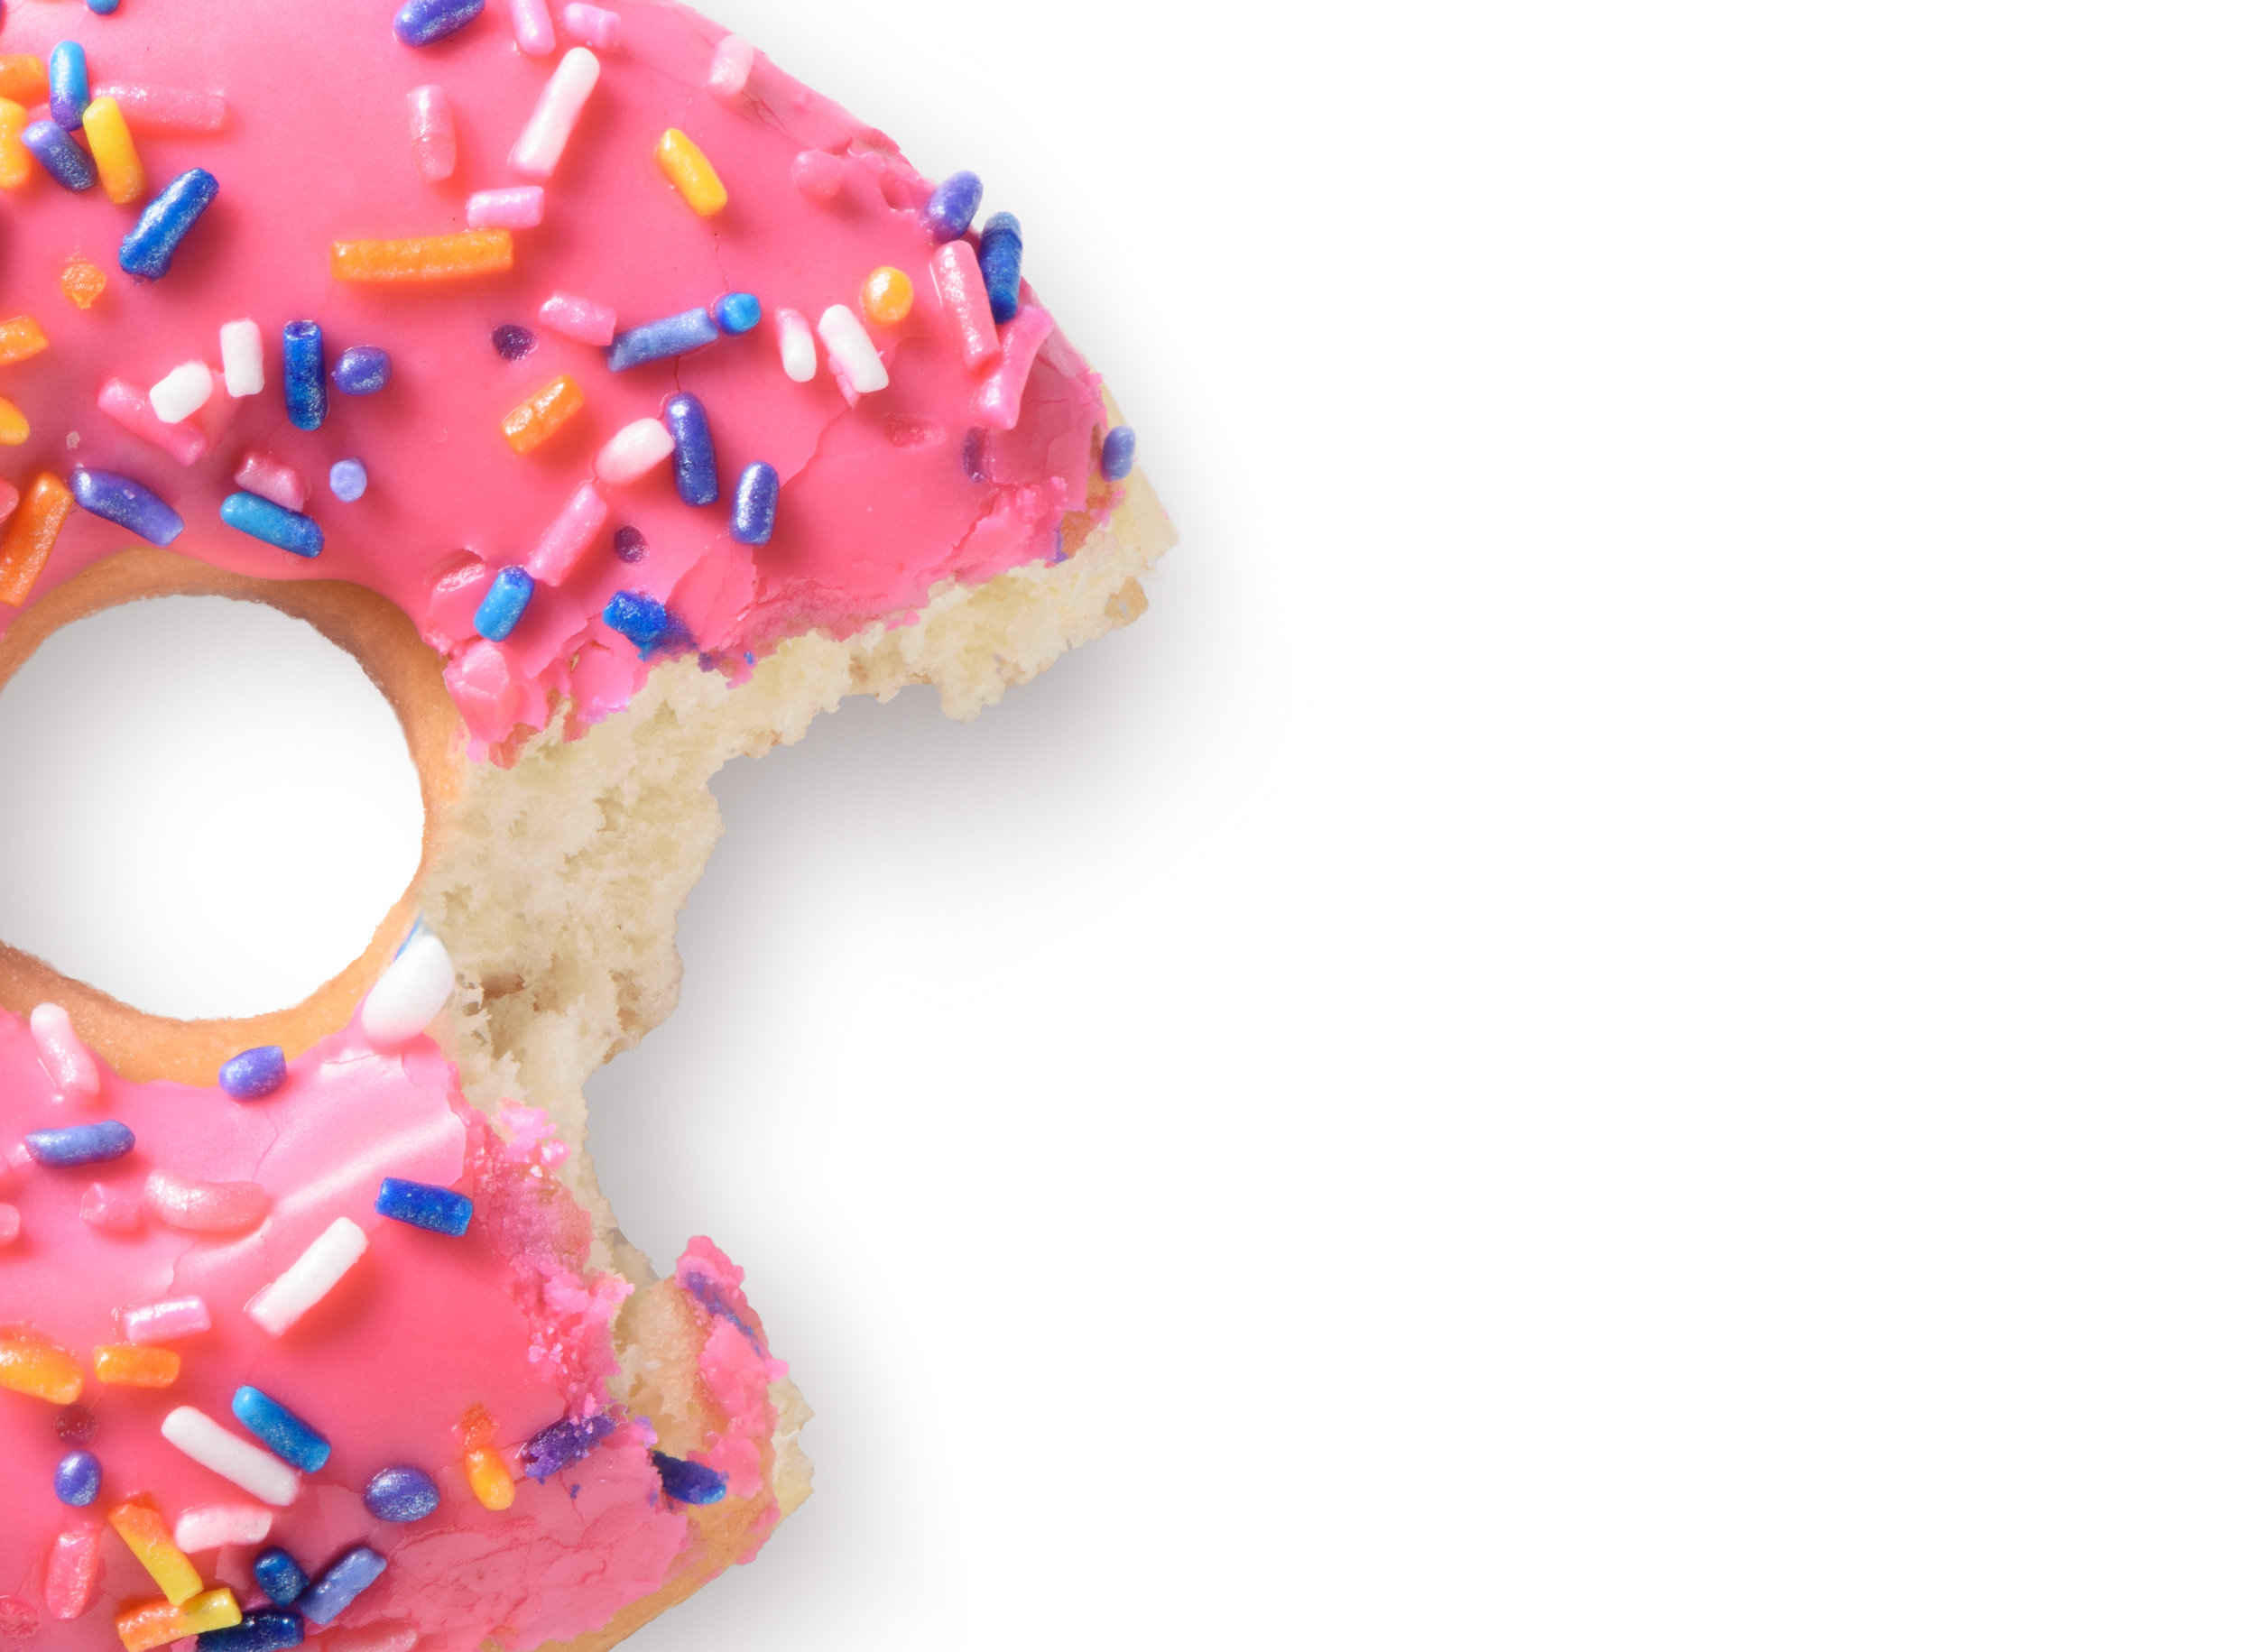 Donuts can be part of your life AND you can eat healthfully. It doesn't have to be either-or!